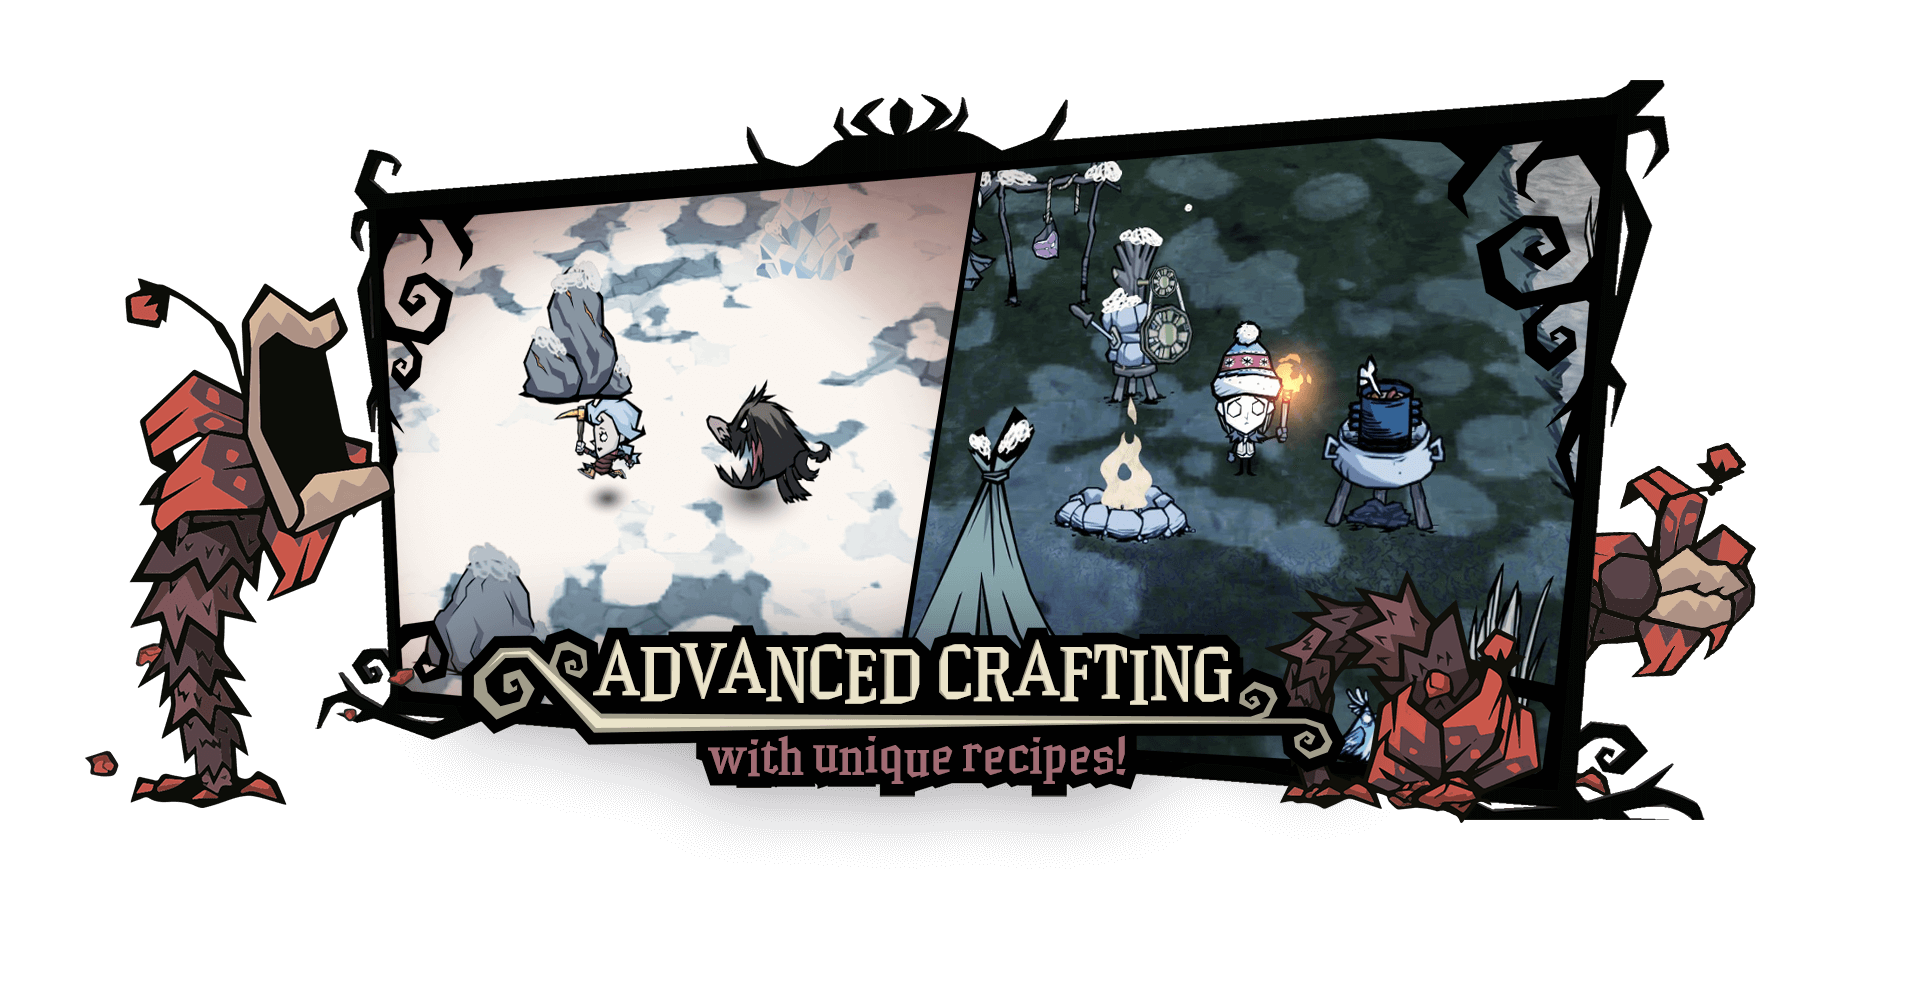 Don't starve advanced crafting new